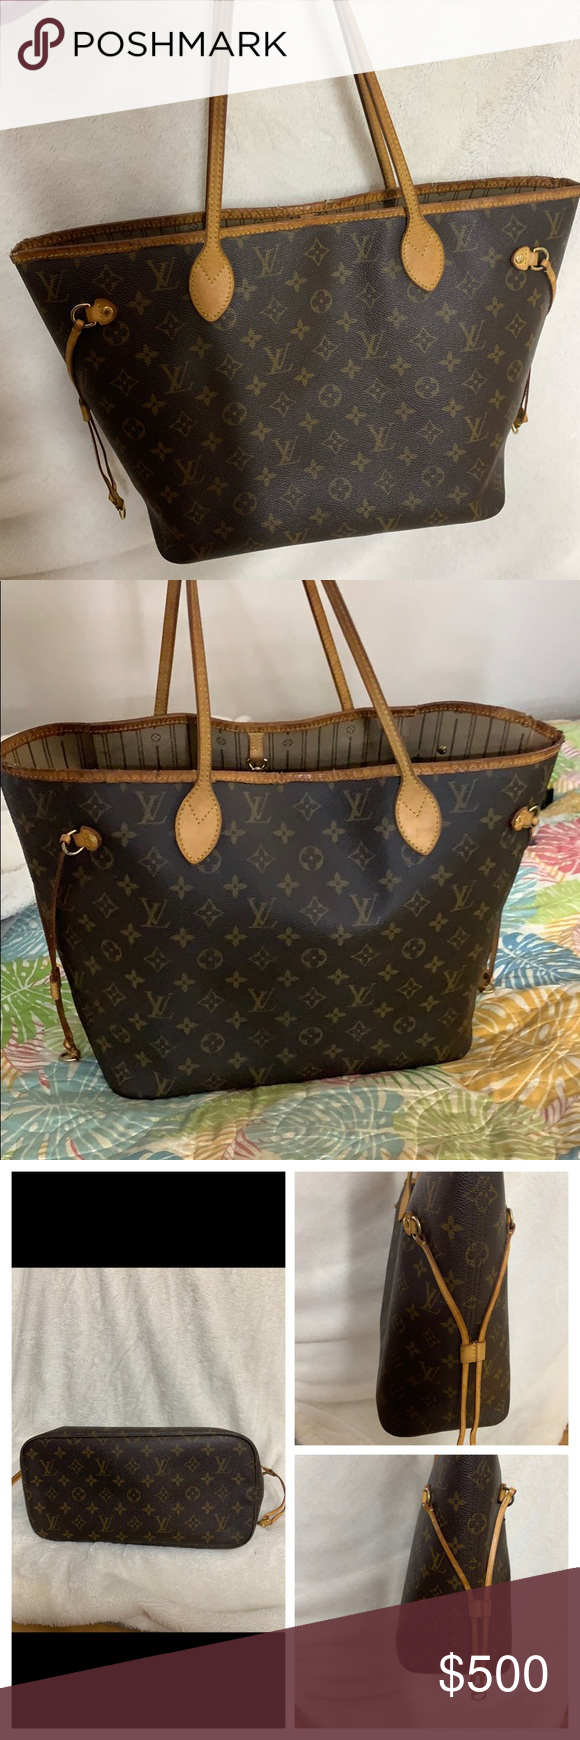 Authentic Louis Vuitton Neverfull MM (With images) Louis